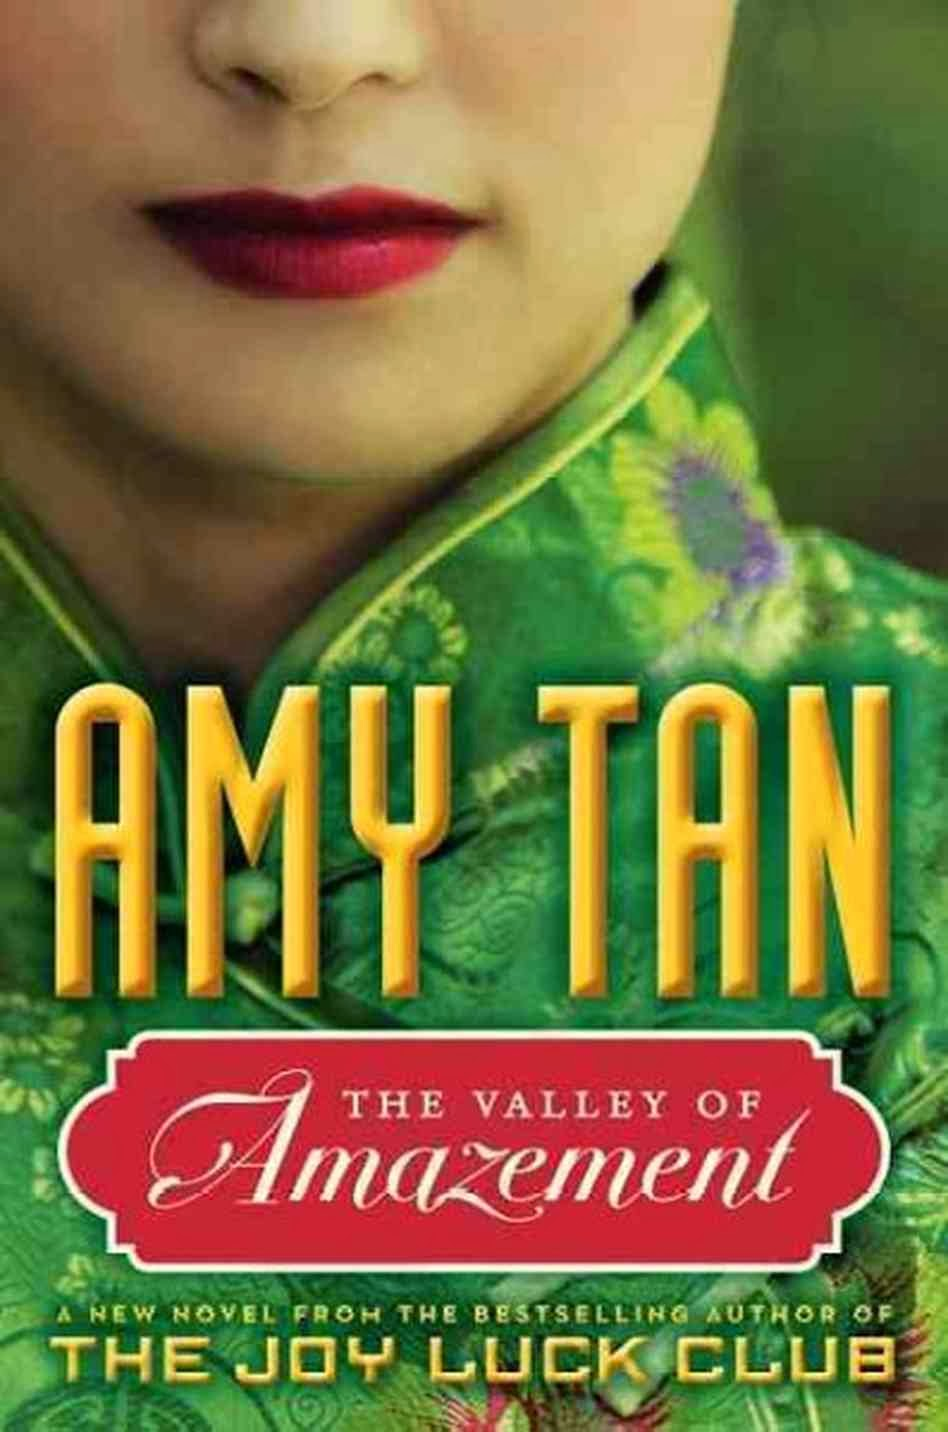 The quivering pen november 2013 friday freebie the valley of amazement by amy tan someone elses love story by joshilyn jackson and the death of bees by lisa odonnell fandeluxe Images